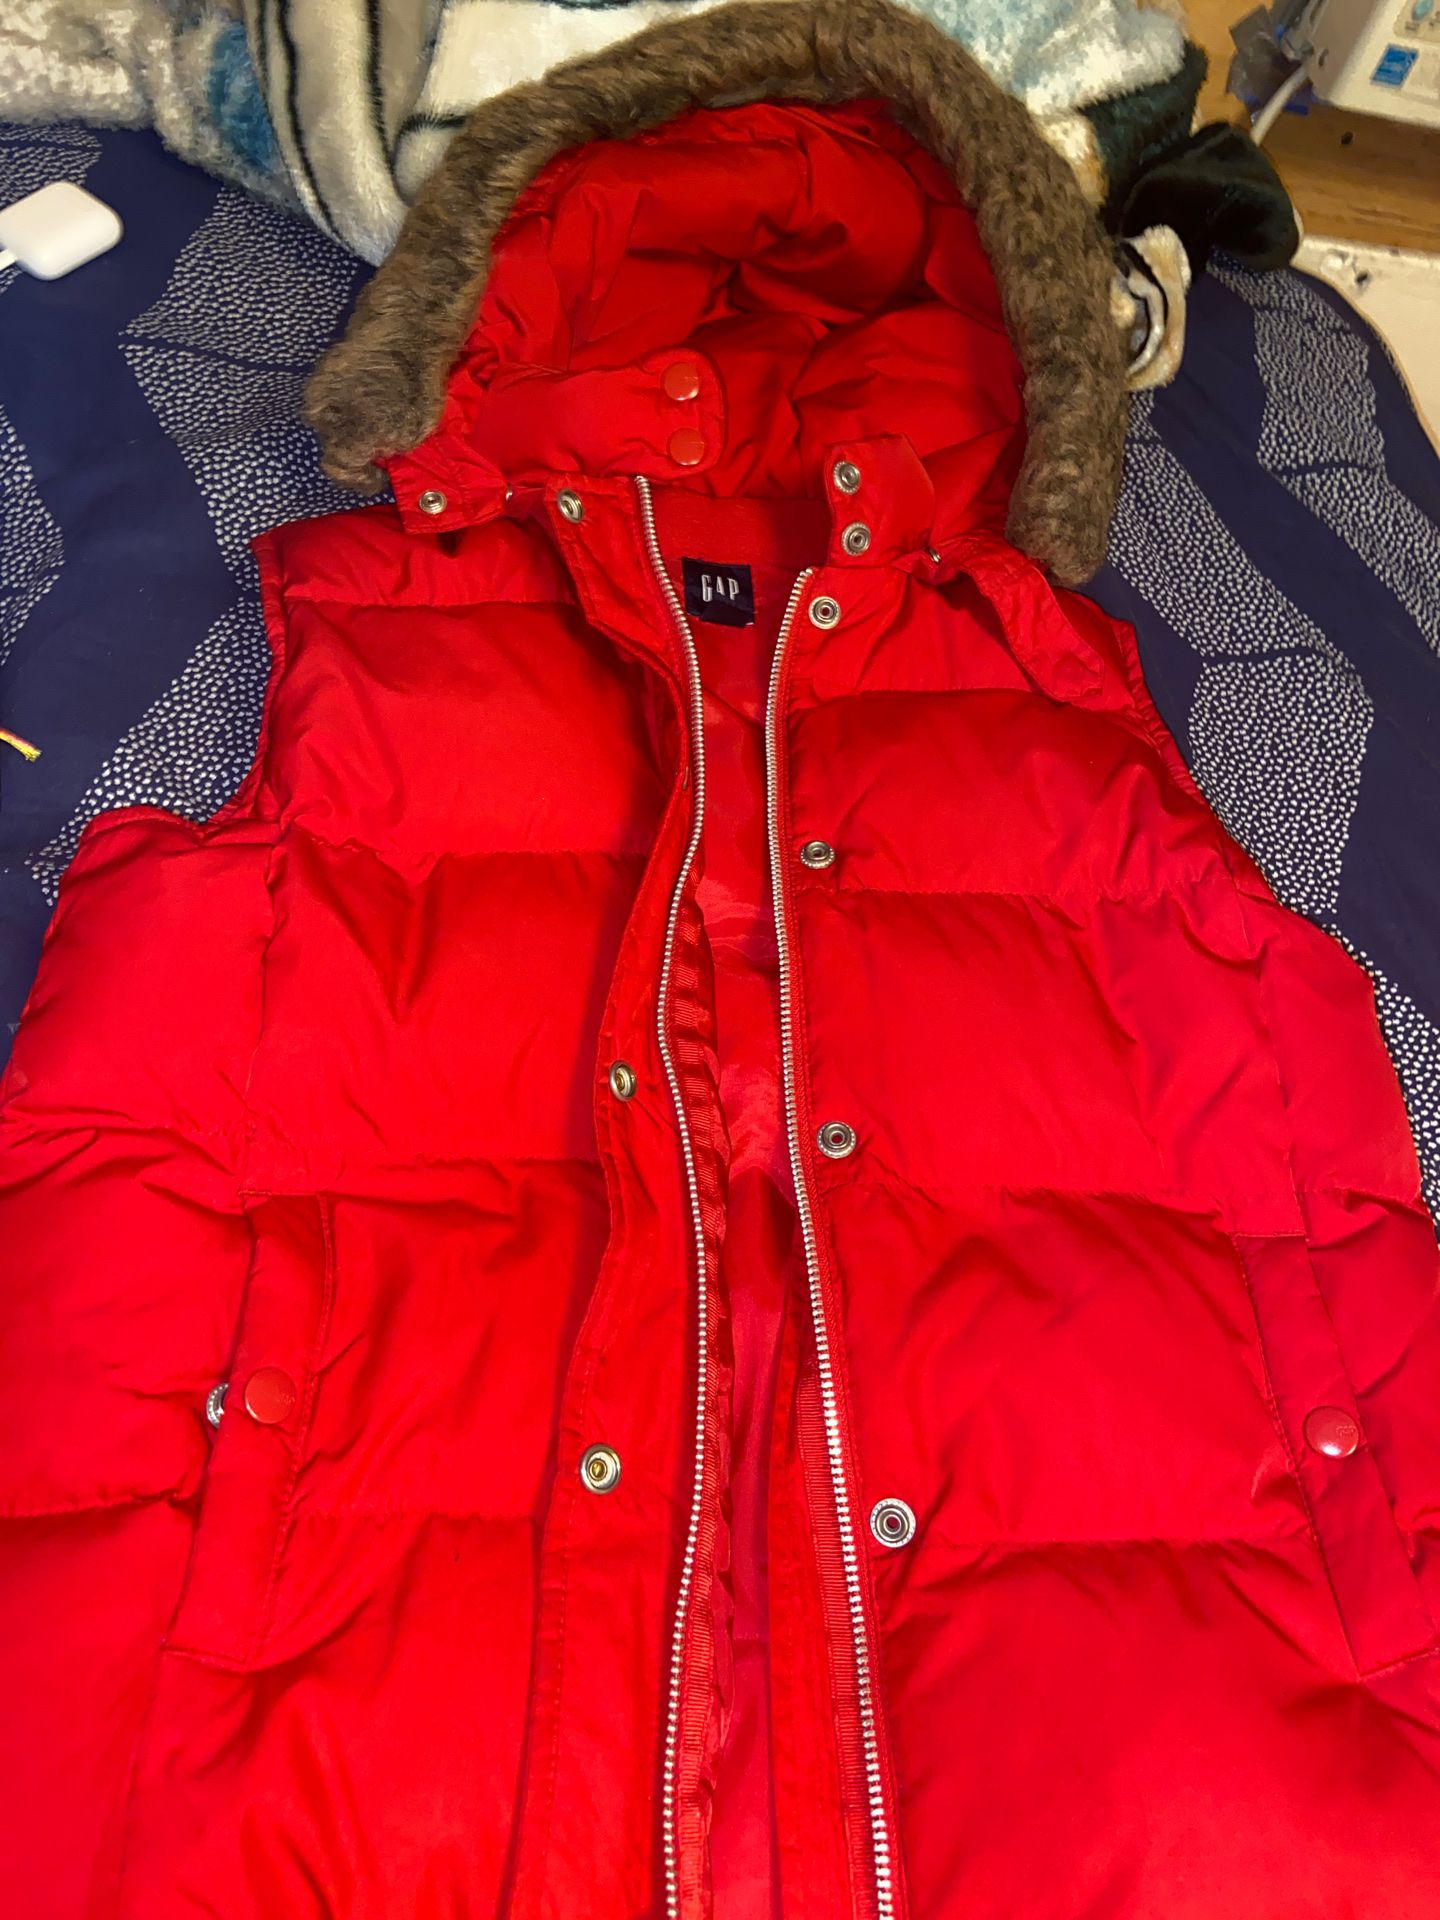 Red sleeve less jacket